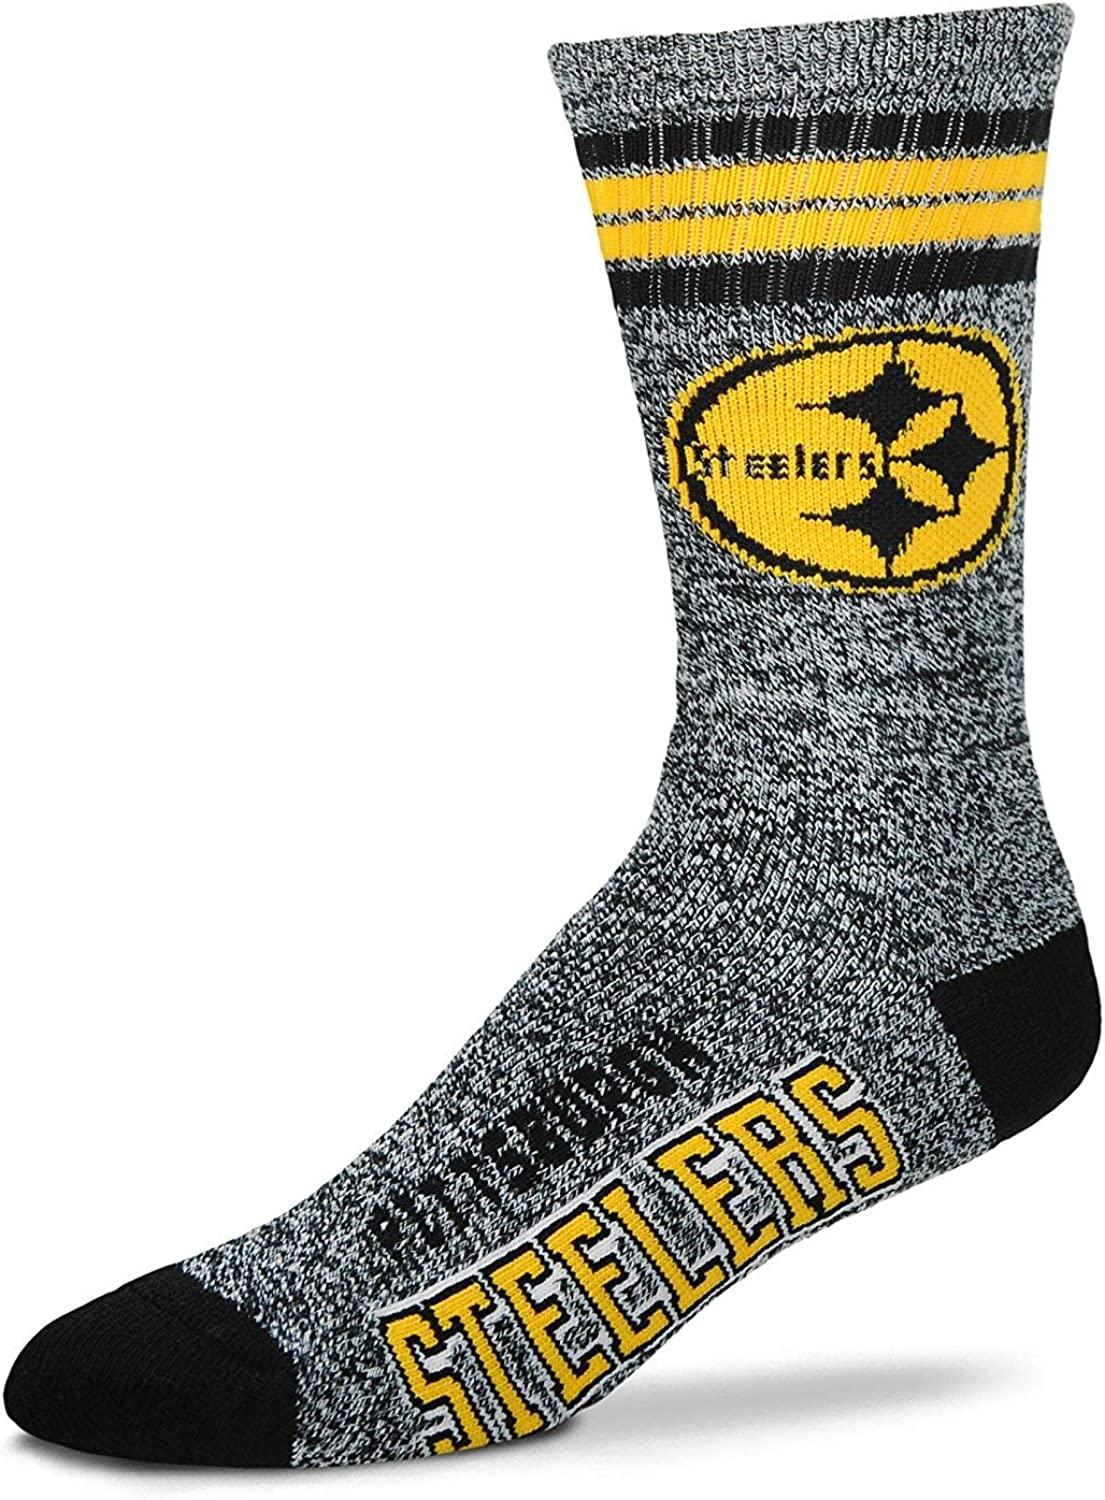 For Bare Feet Approx. 4-8 Years NFL Got Marbled Youth Size Kids Crew Socks